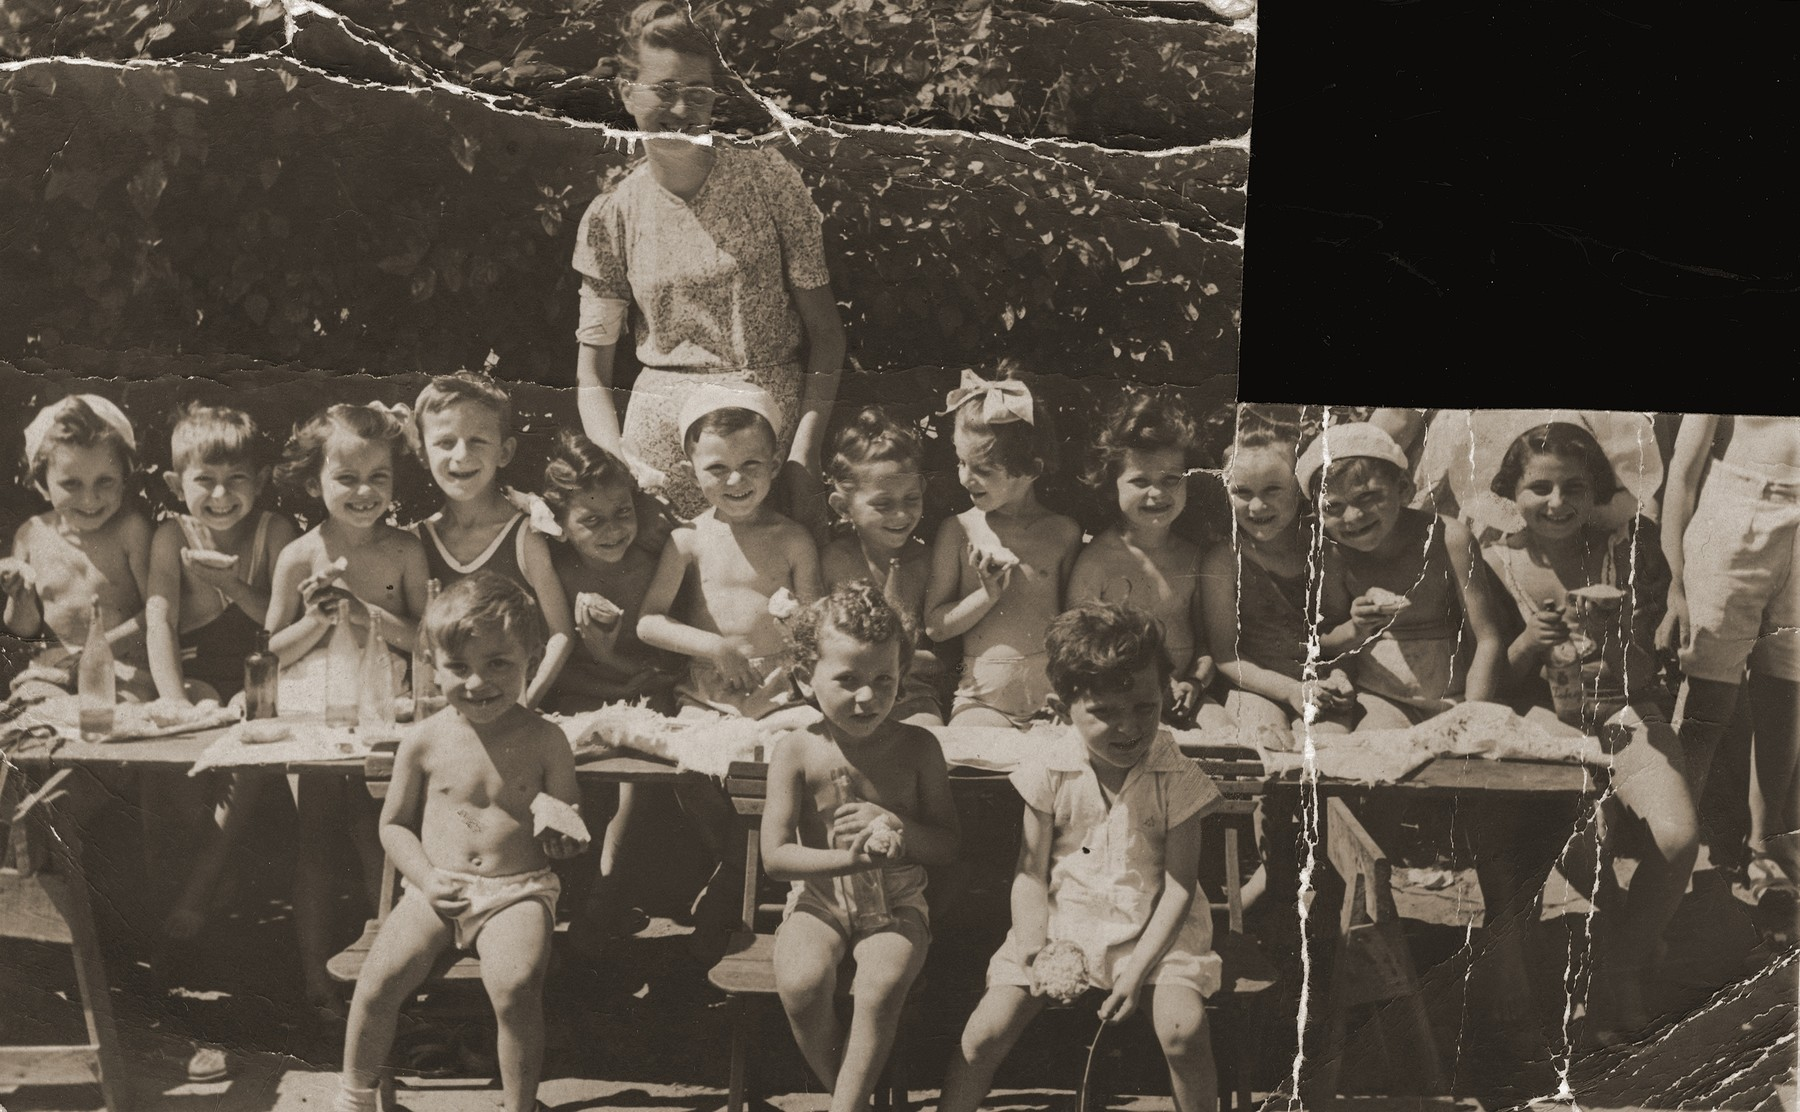 Group portrait of Jewish preschoolers in the kindergarten established by Ita Rozencwajg in the Warsaw ghetto.